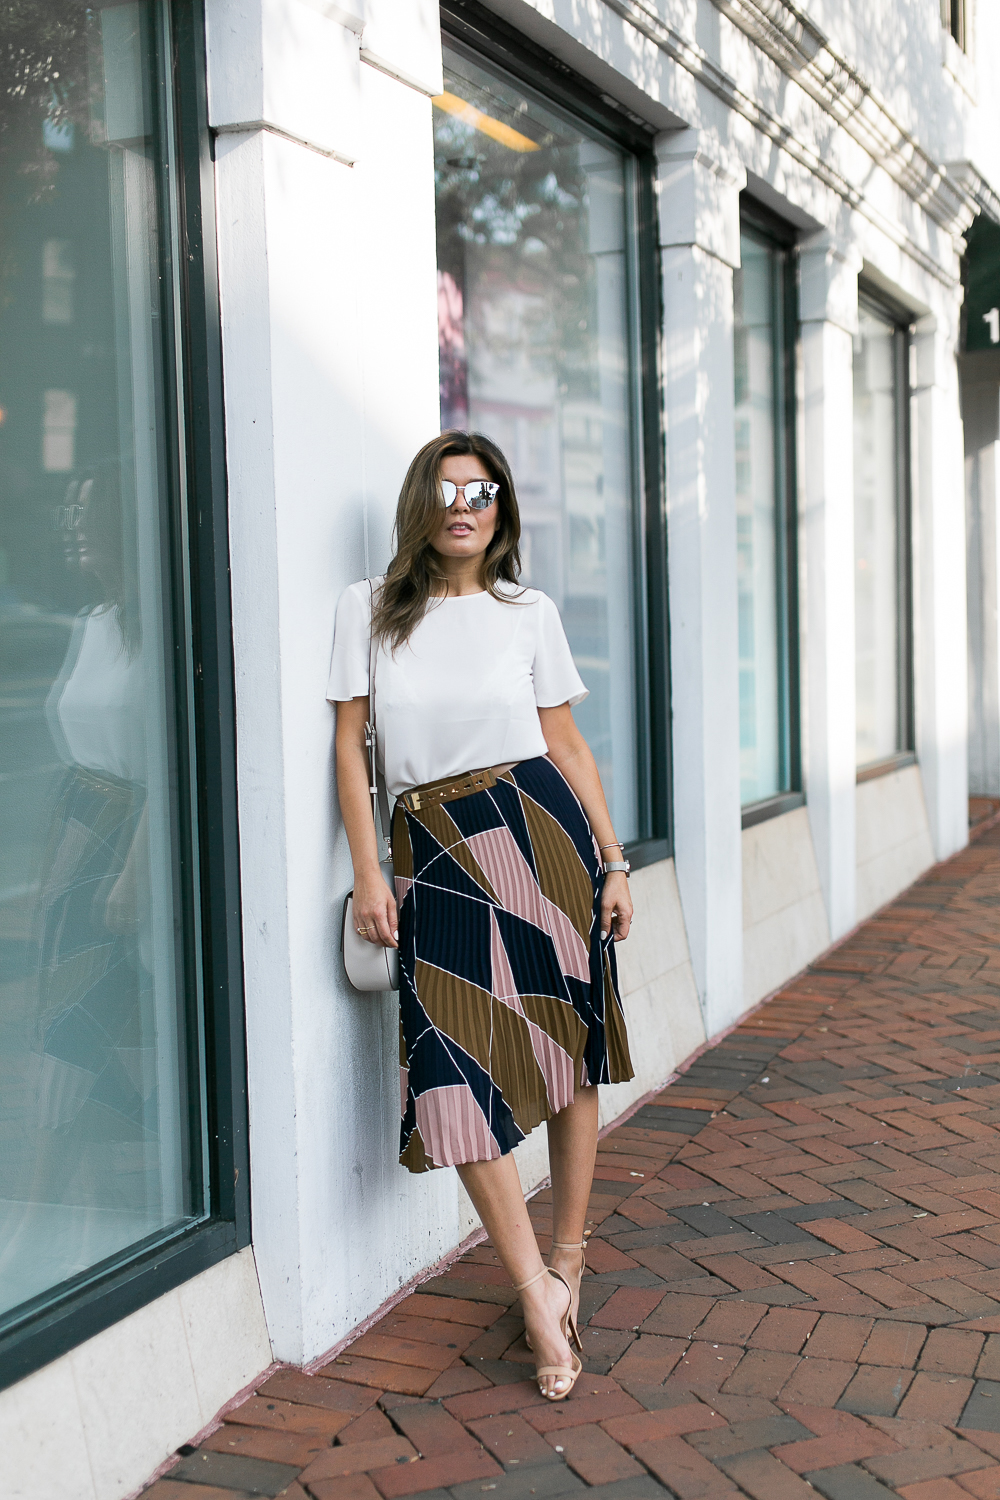 Style MBA wears ann taylor skirt and top